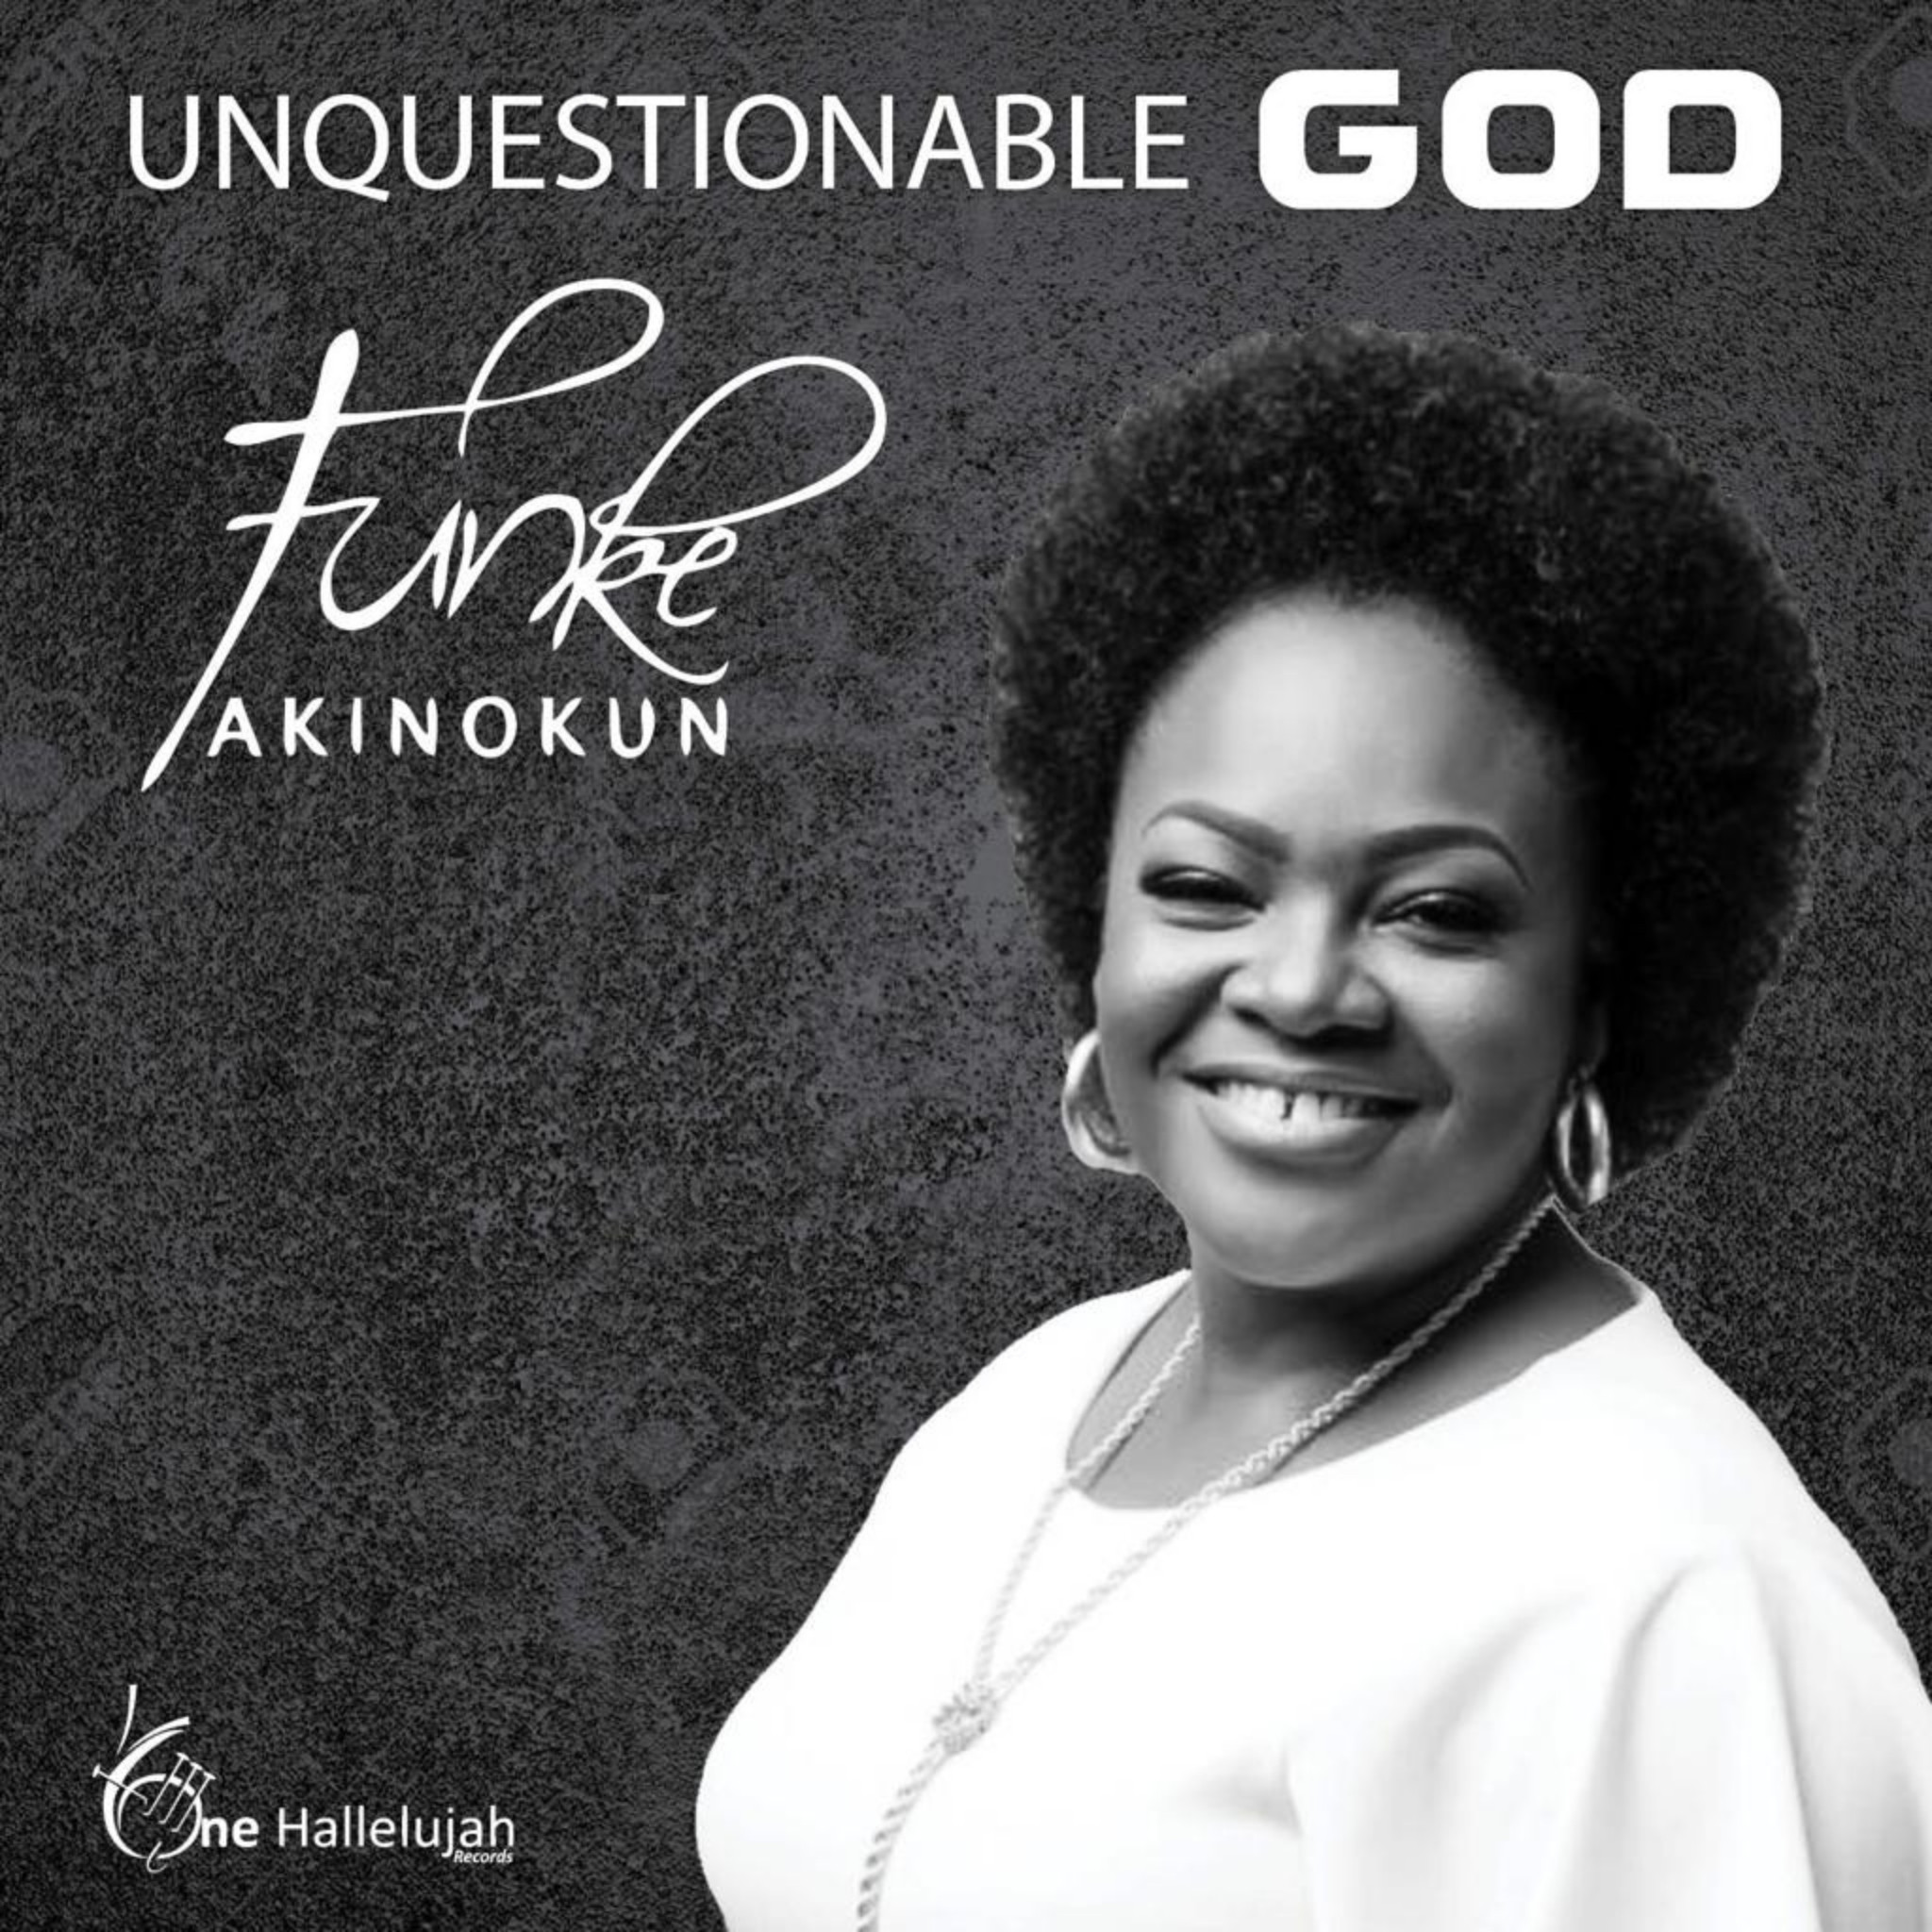 Funke Akinokun celebrates her 50th birthday with thanksgiving song